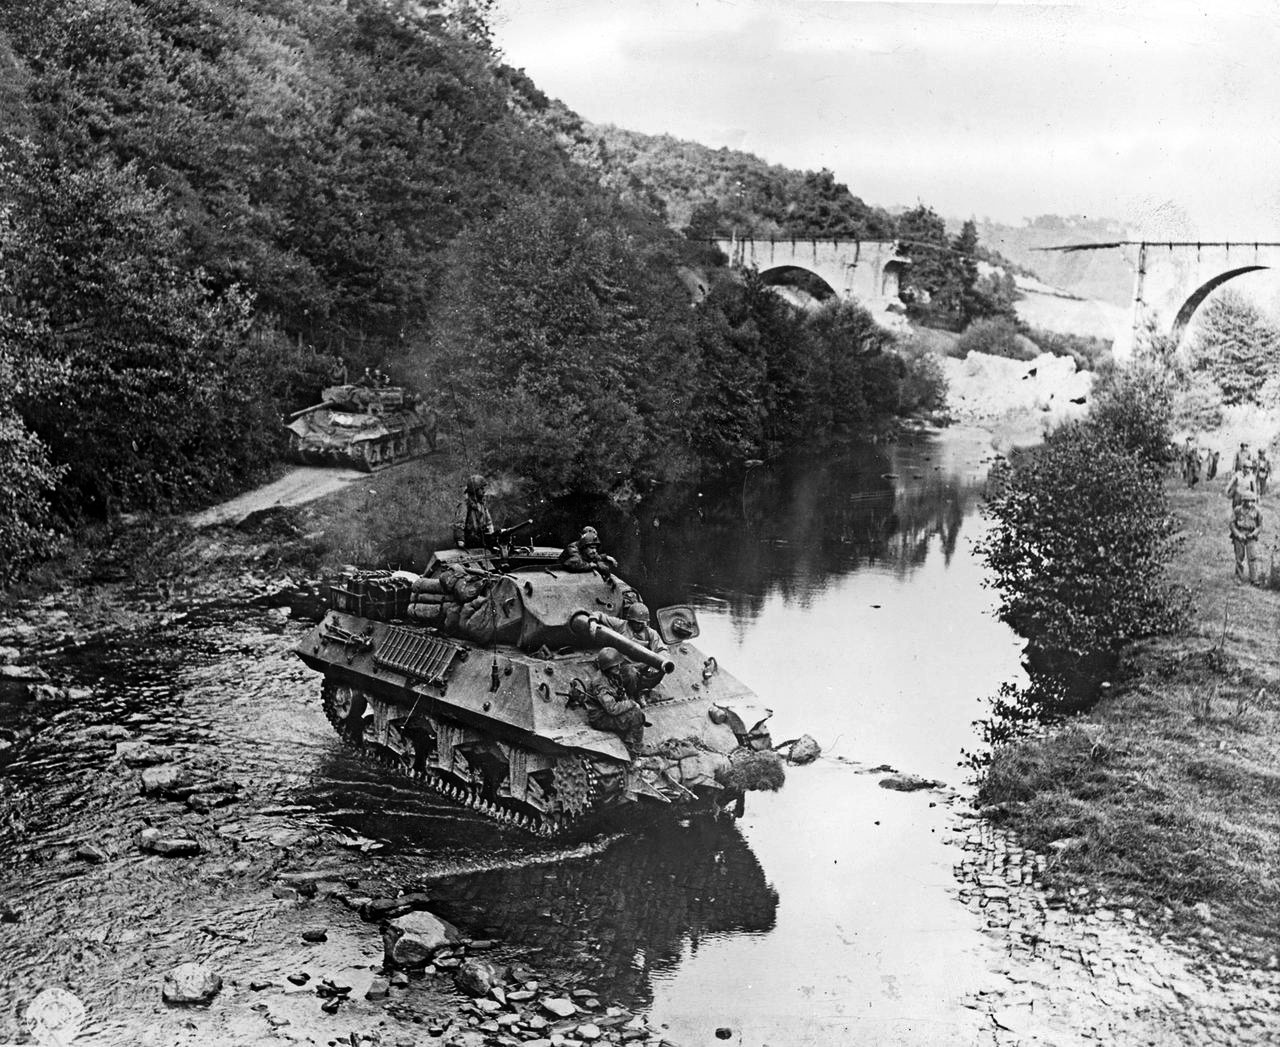 [IMG]http://upload.wikimedia.org/wikipedia/commons/7/7a/Tank_destroyers.jpg[/IMG]